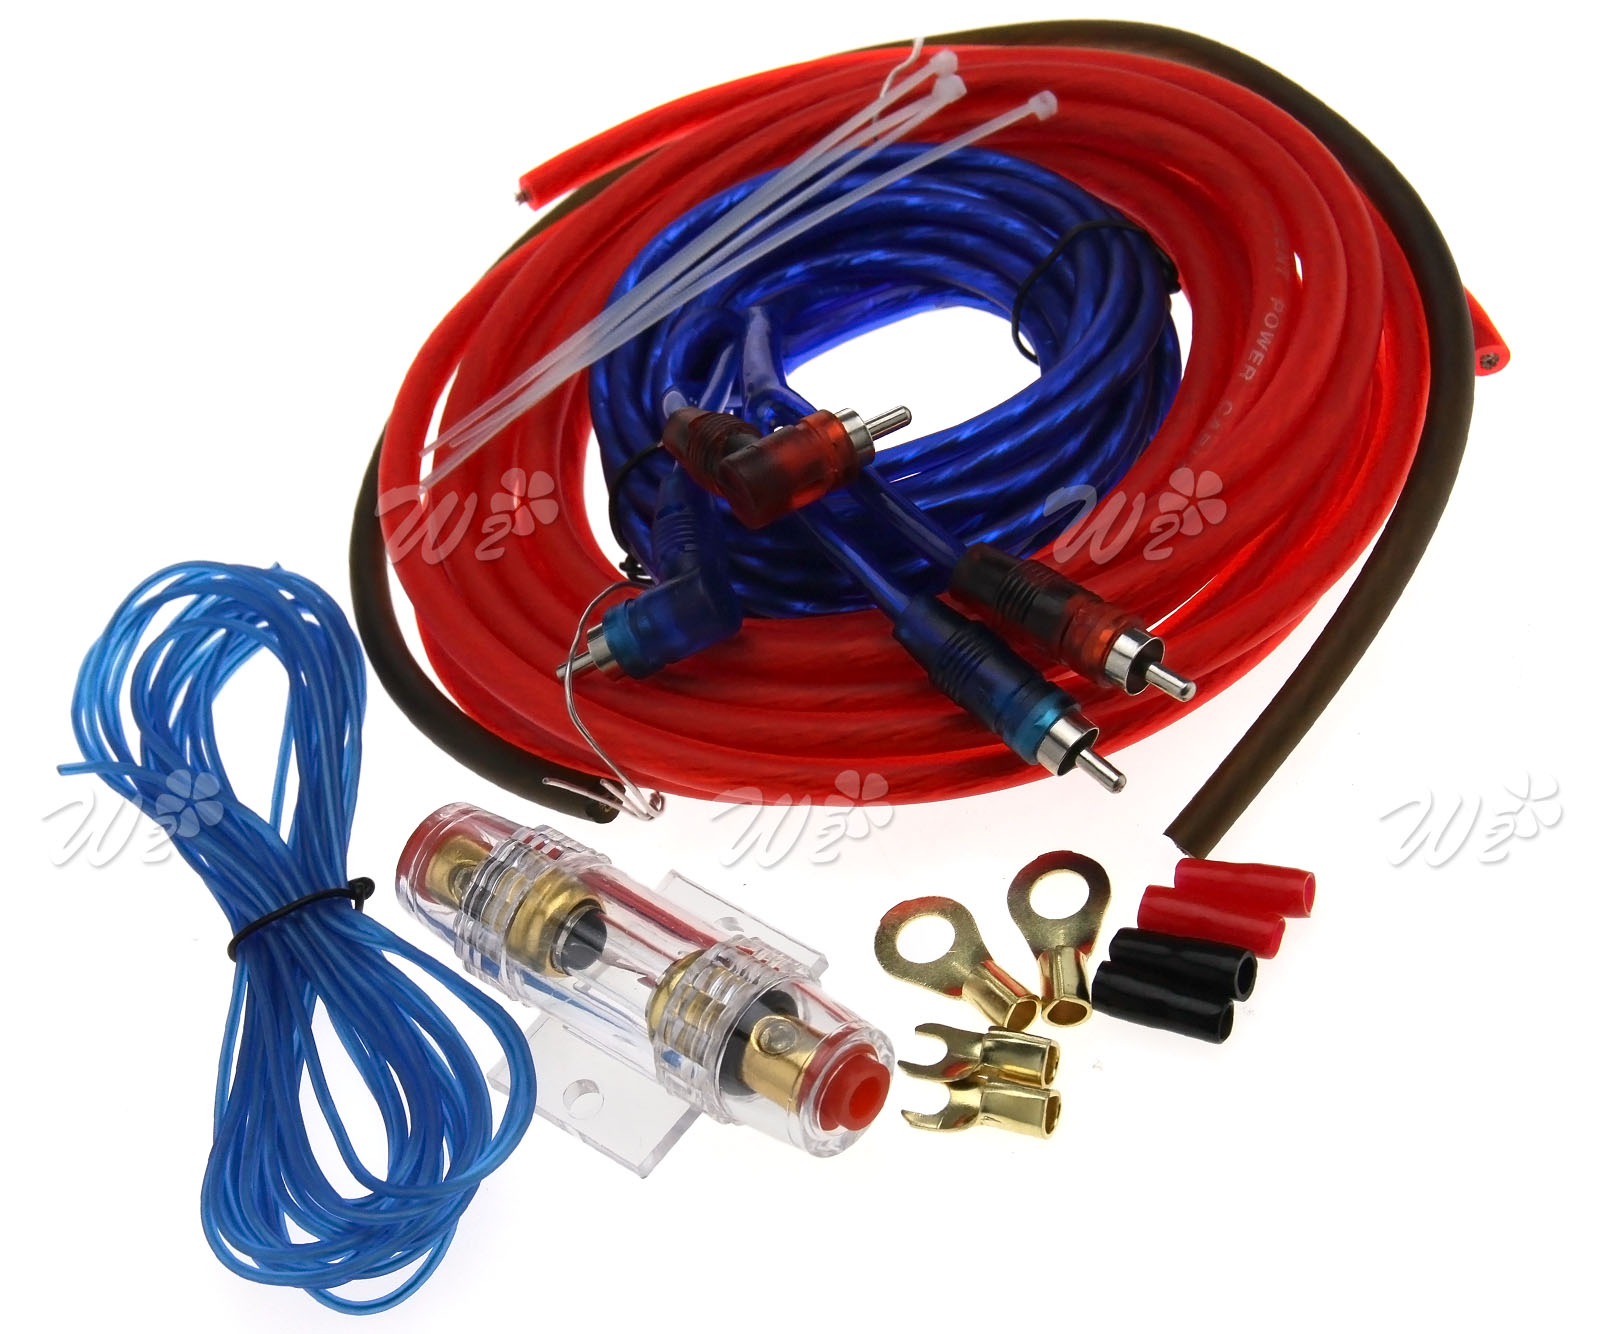 800 Watt Car Kit Amplifier Amp Wiring Fuse Audio Sound Sub Woofer For Subwoofers And An